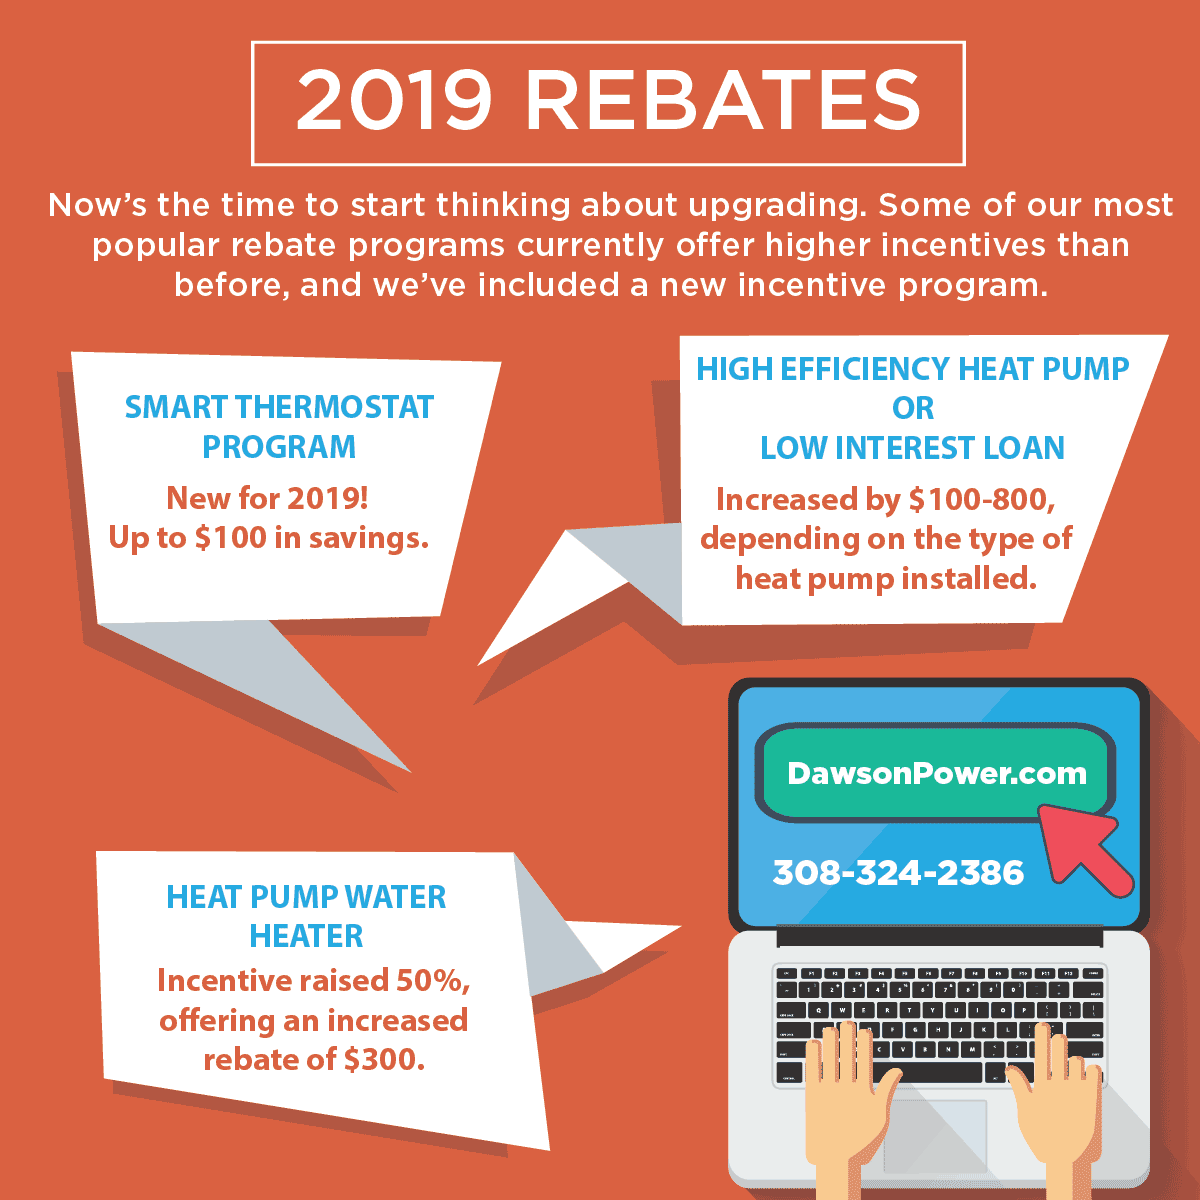 Now's the time to start thinking about upgrading. Some of our most popular rebate programs currently offer higher incentives than before, and we've included a new incentive program. Smart Thermostat Program - New for 2019! Up to $100 in savings. High Efficiency Heat Pump or Low Interest Loan - Increased by $100-800, depending on the type of heat pump installed. Heat Pump Water Heater - Incentive raised 50%, offering an increased rebate of $300.